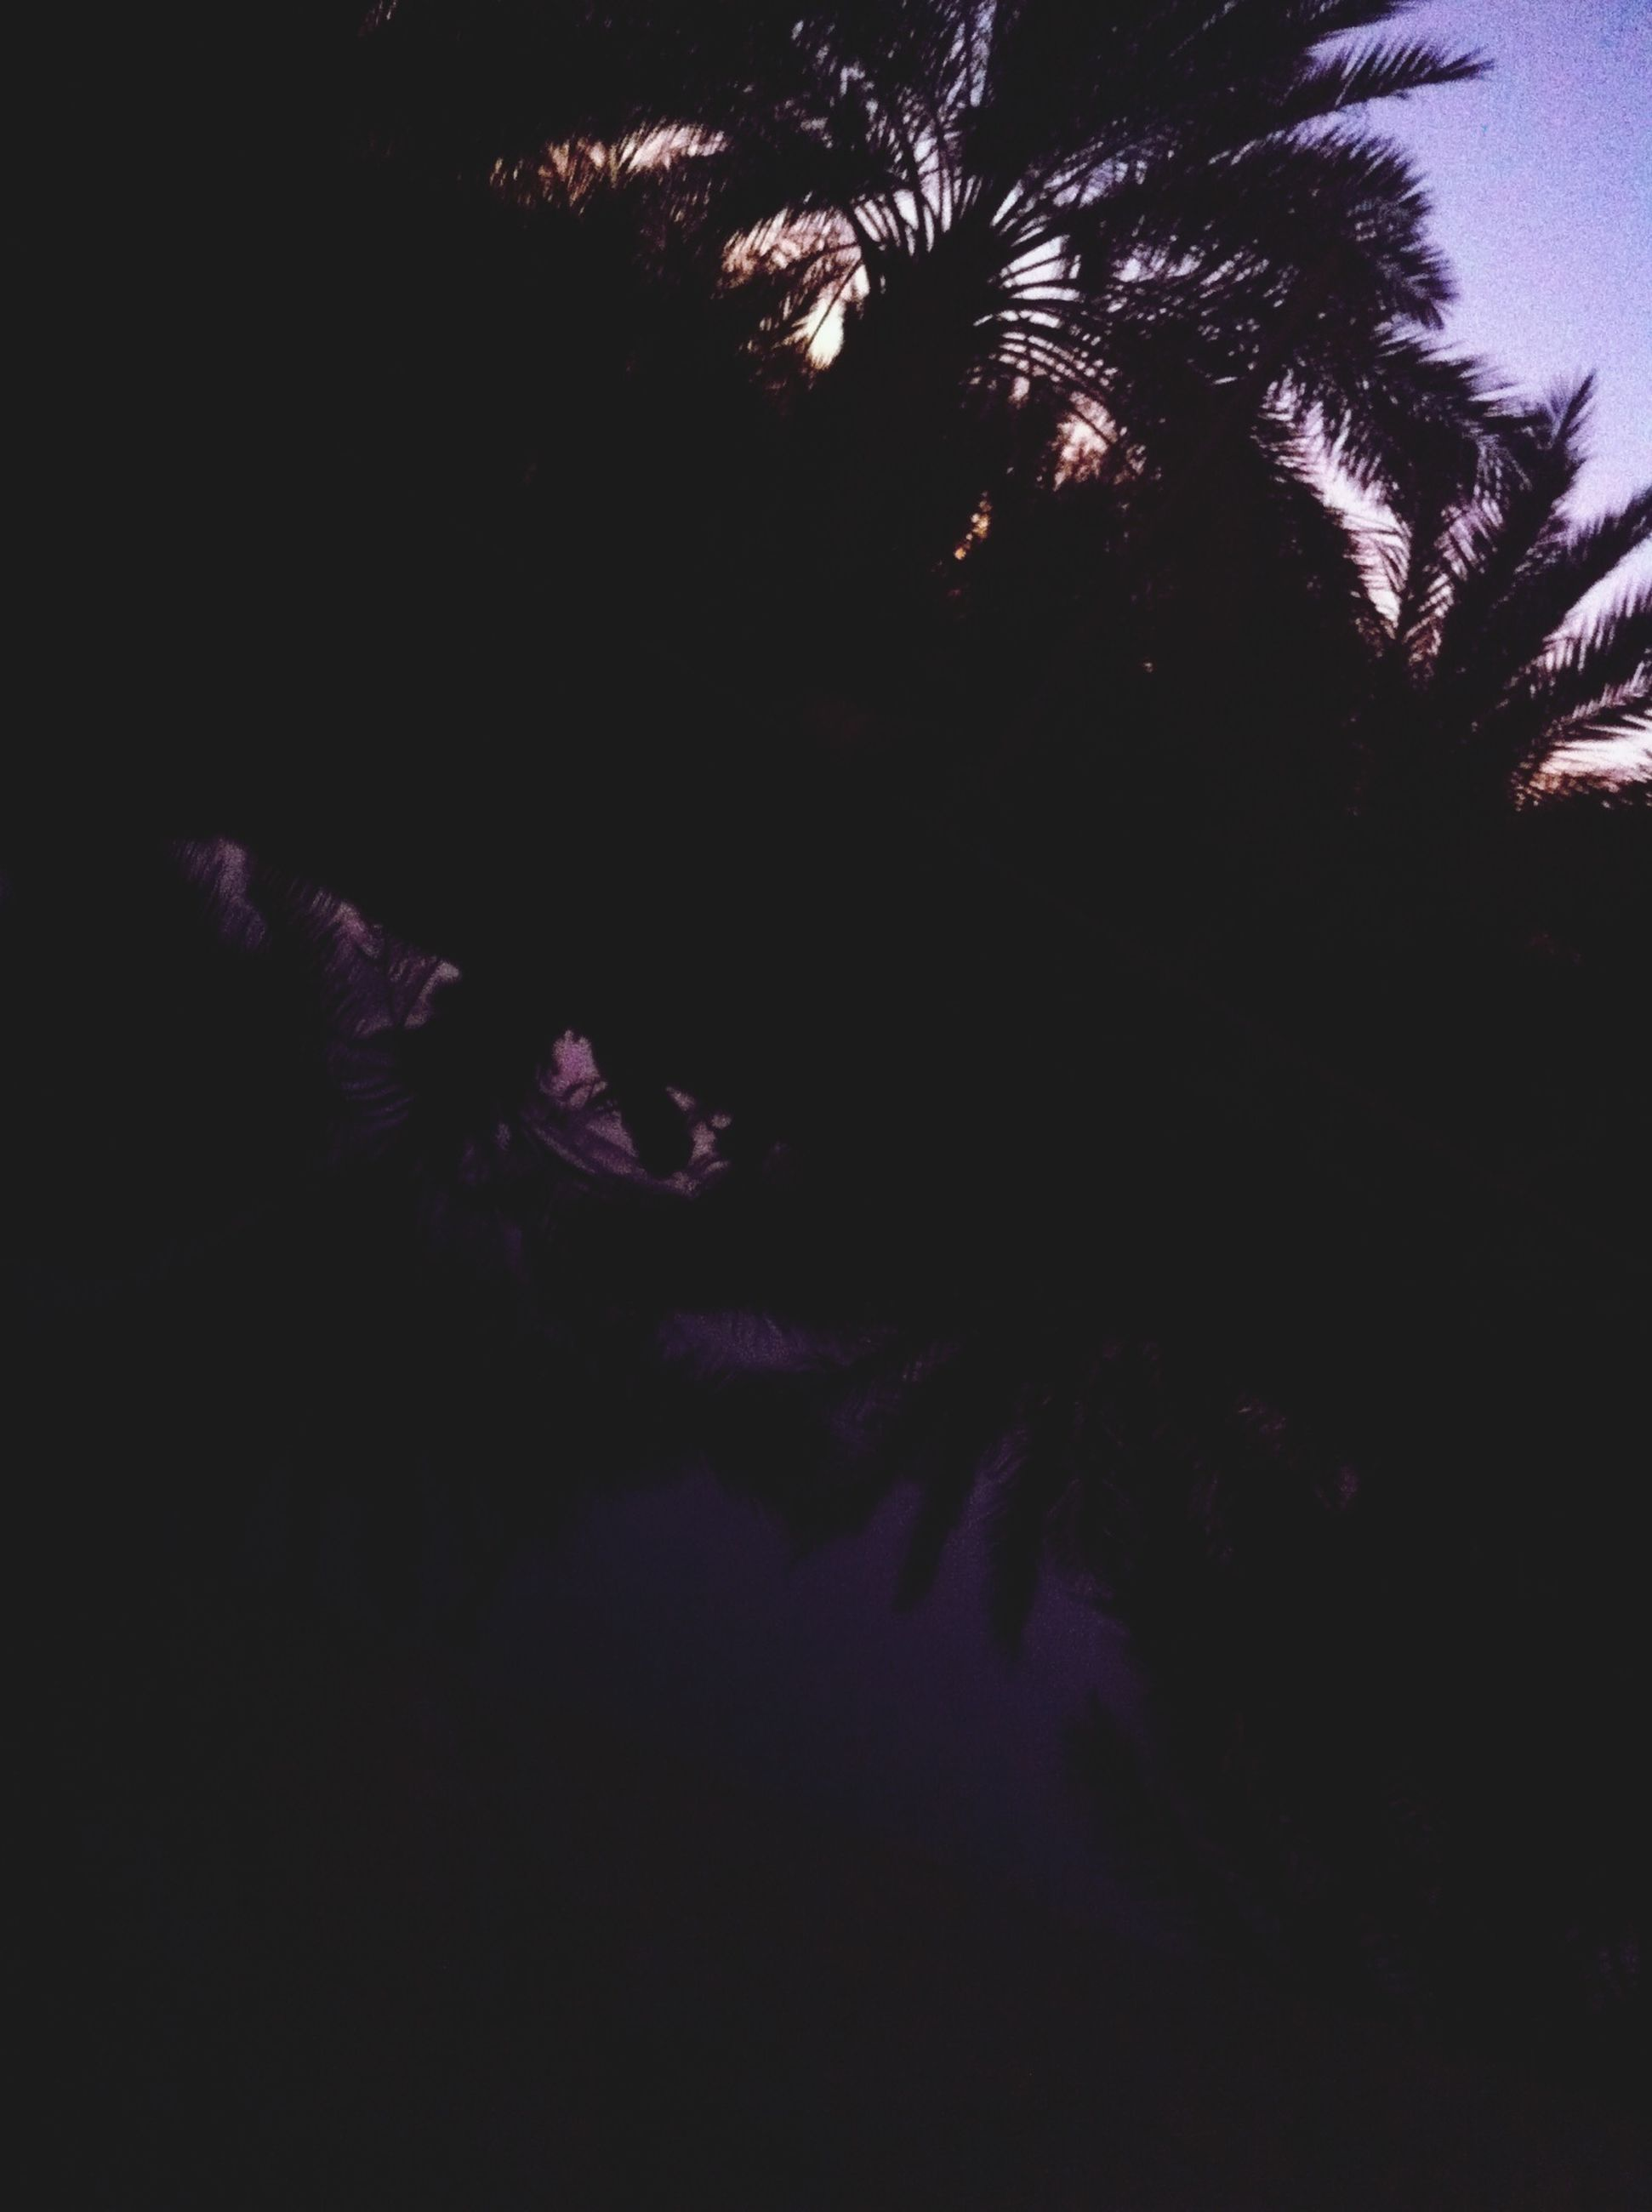 tree, silhouette, night, beauty in nature, growth, low angle view, tranquility, nature, tranquil scene, scenics, dark, sky, clear sky, branch, copy space, no people, outdoors, palm tree, dusk, idyllic